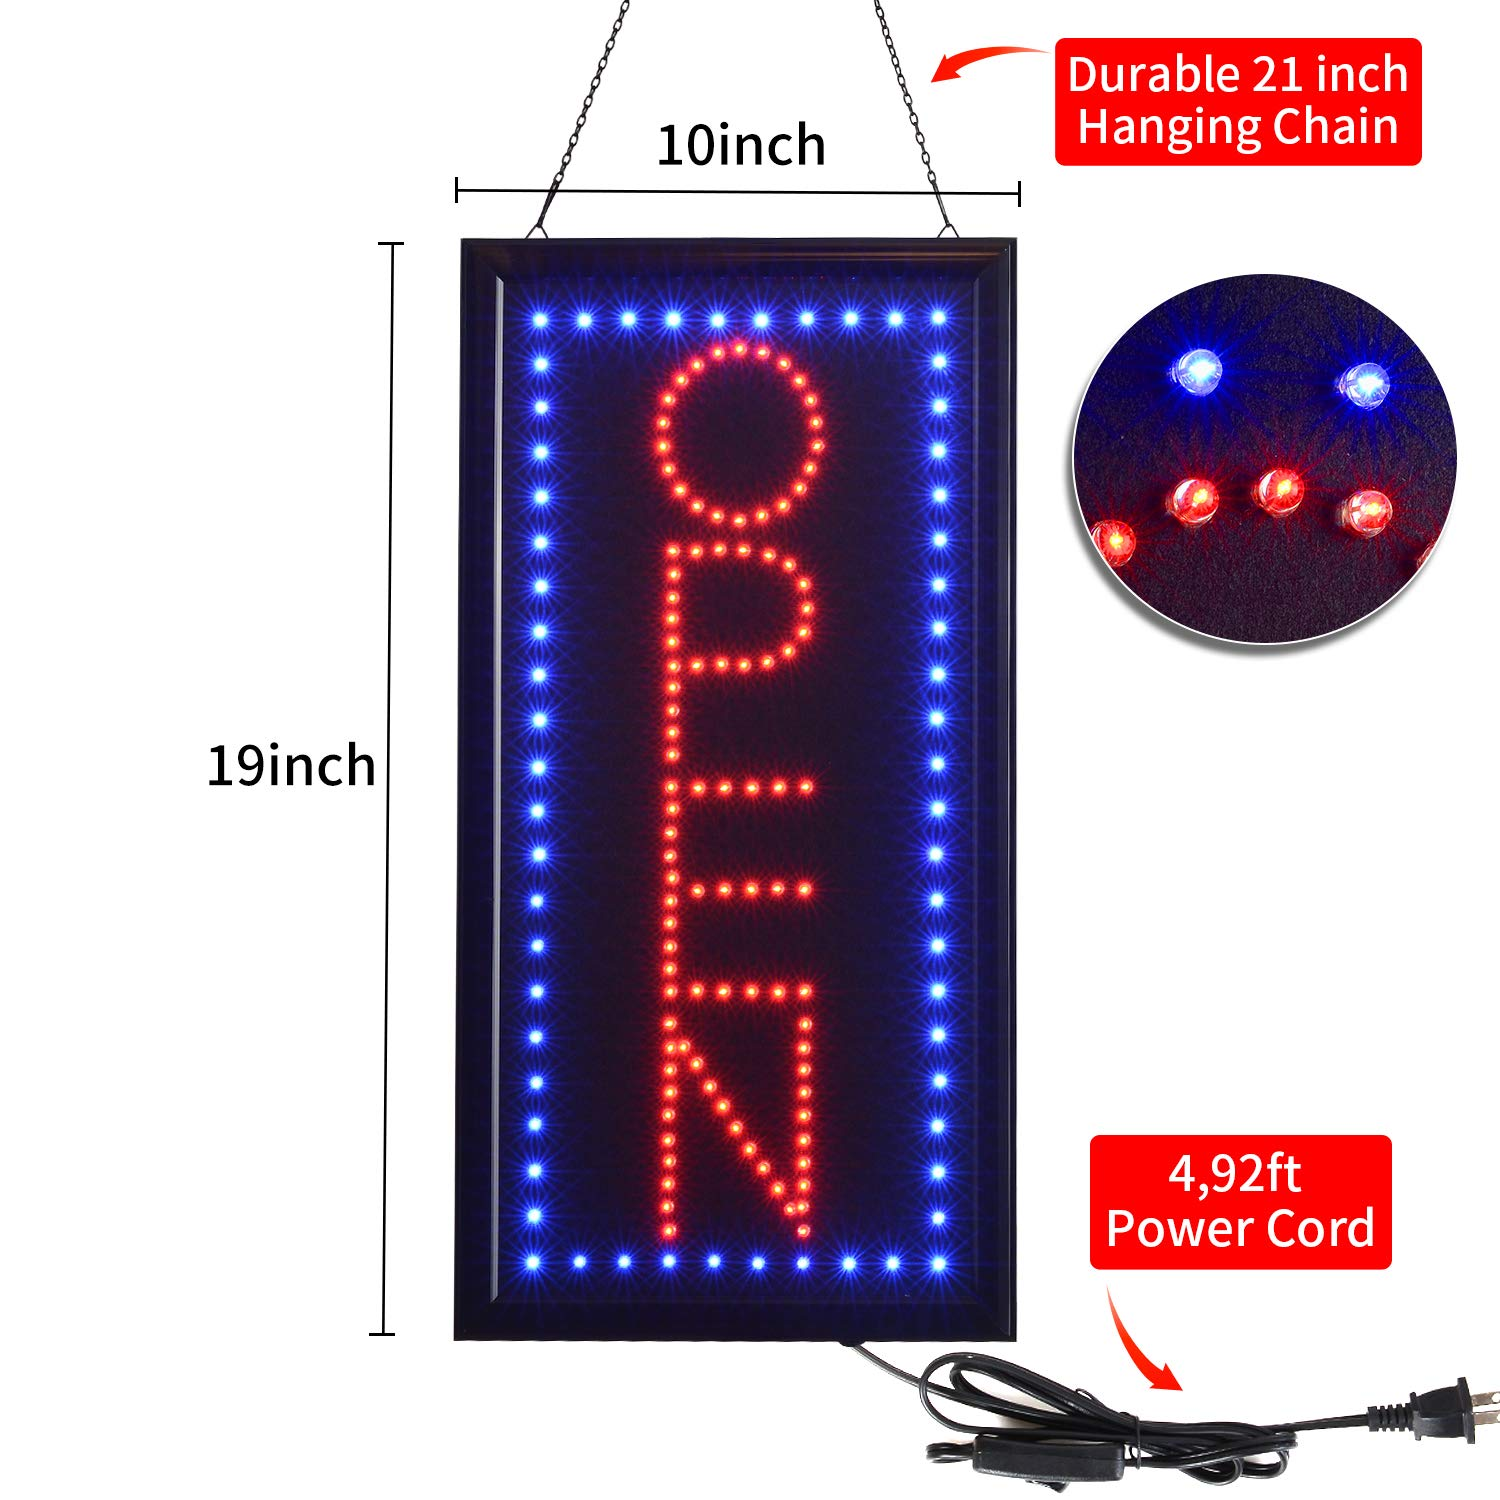 Window Walls Shop LED Open Sign,10x19inch Vertical Light Up Sign LED Business Open Sign Advertisement Board Electric Display Sign Flashing /& Steady Mode Electronic Lighted Signs for Business Bar,